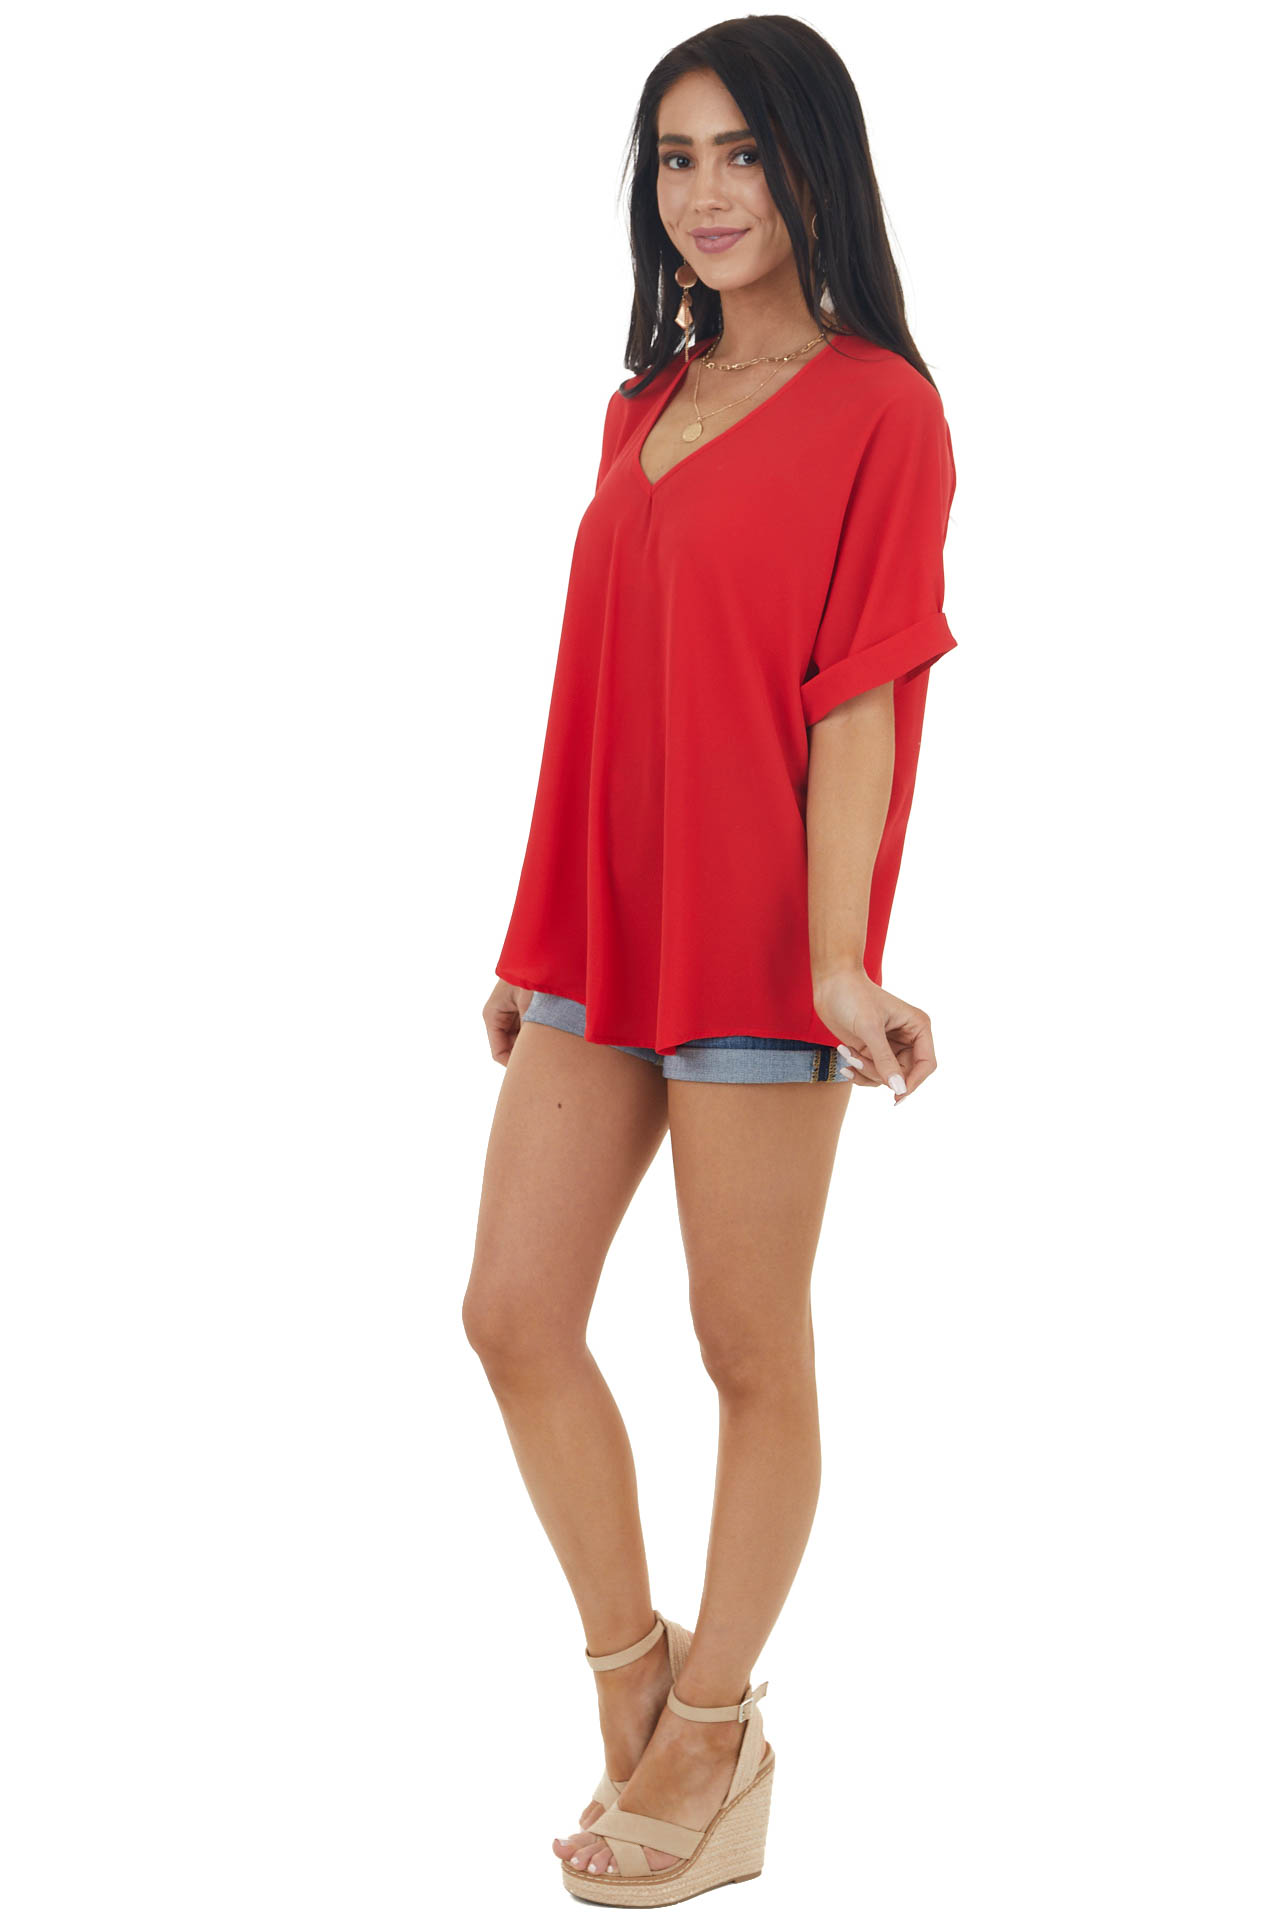 Ruby Red V Neck Loose Fit Textured Blouse with Short Sleeves